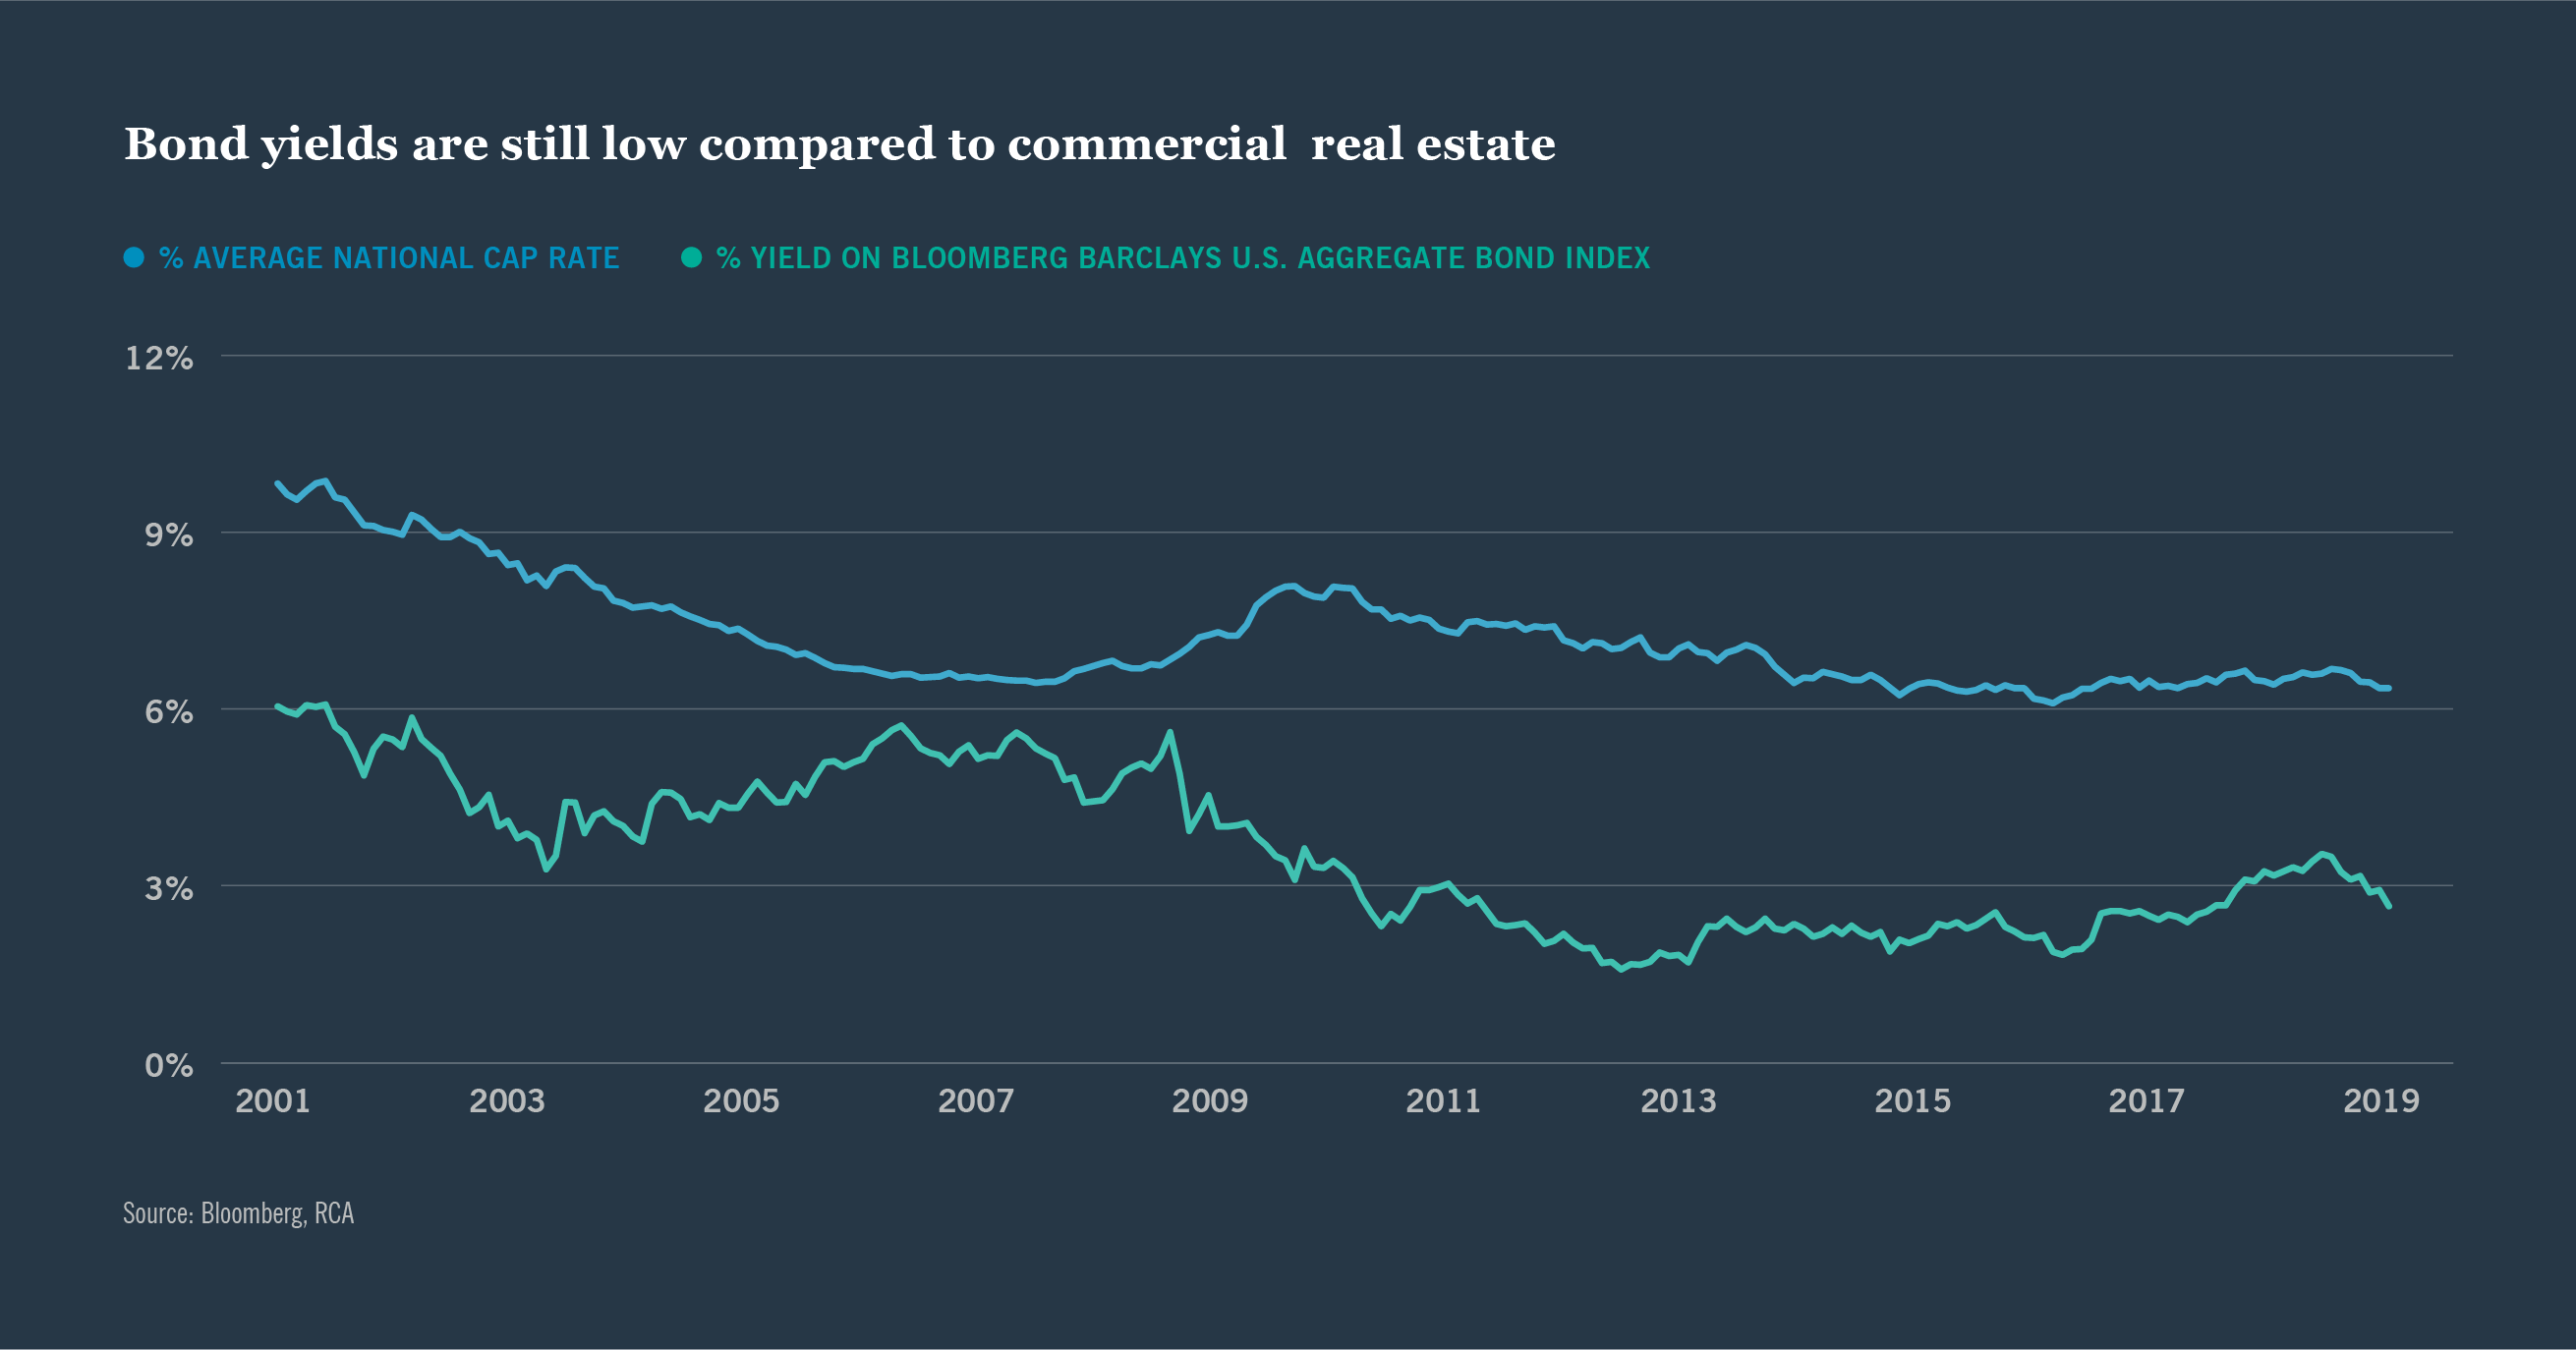 Chart: Bond yields are still low compared to commercial real estate